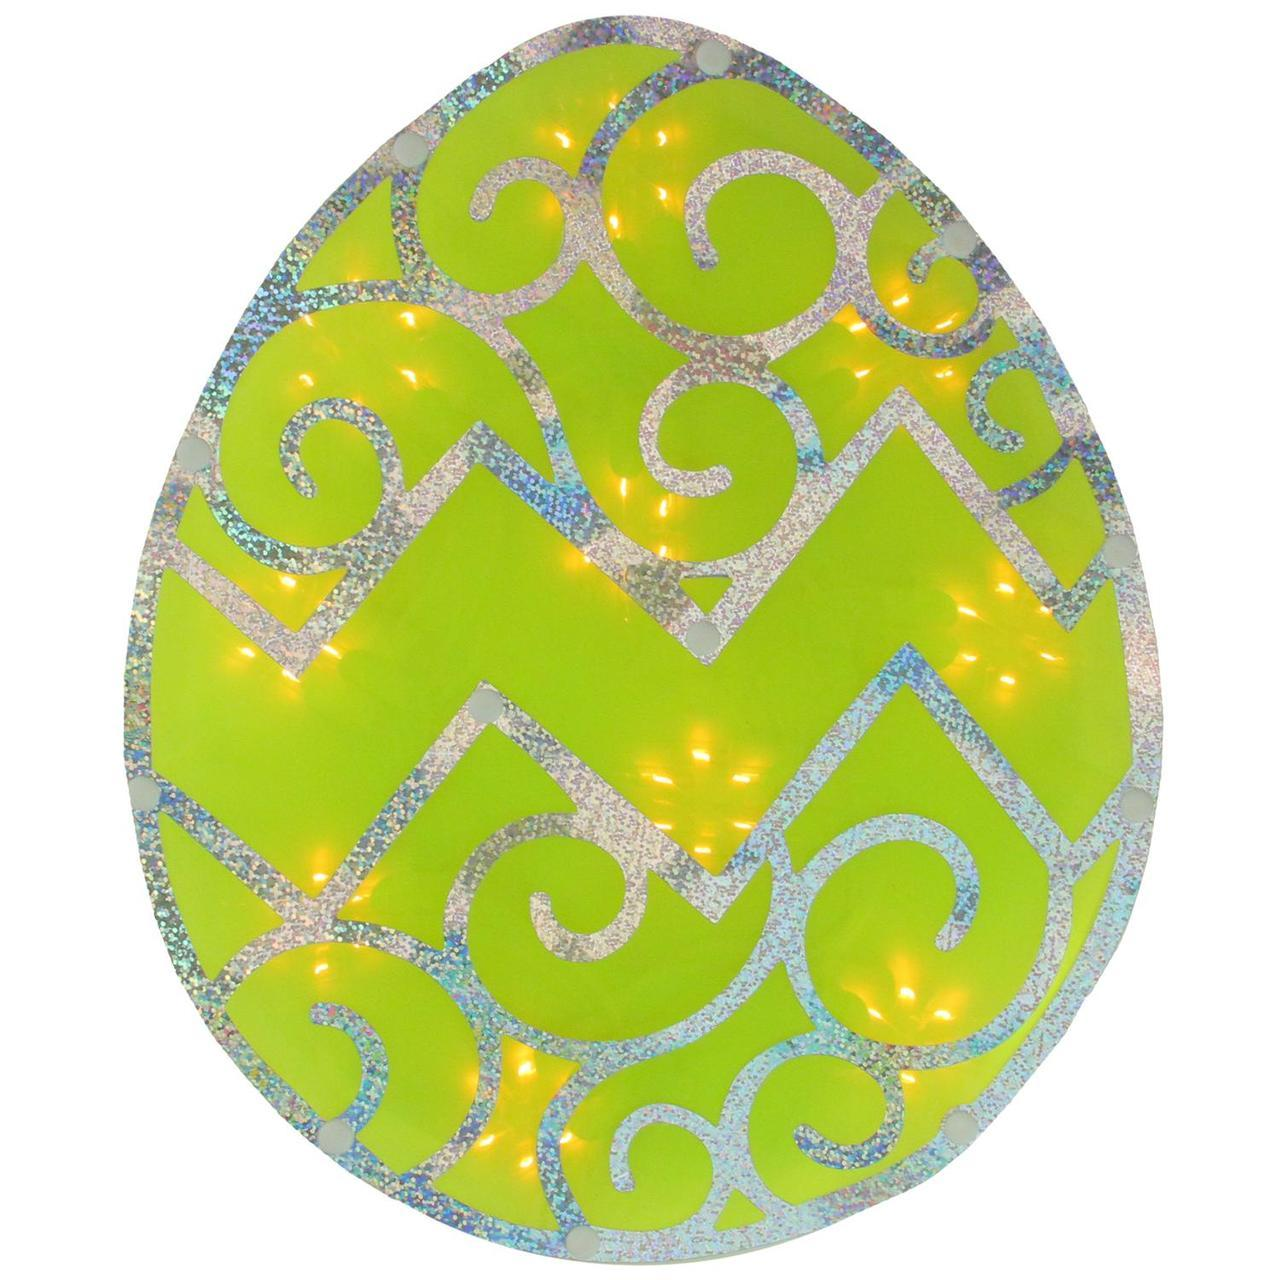 1280x1280 12 Lighted Green Easter Egg Window Silhouette Decoration